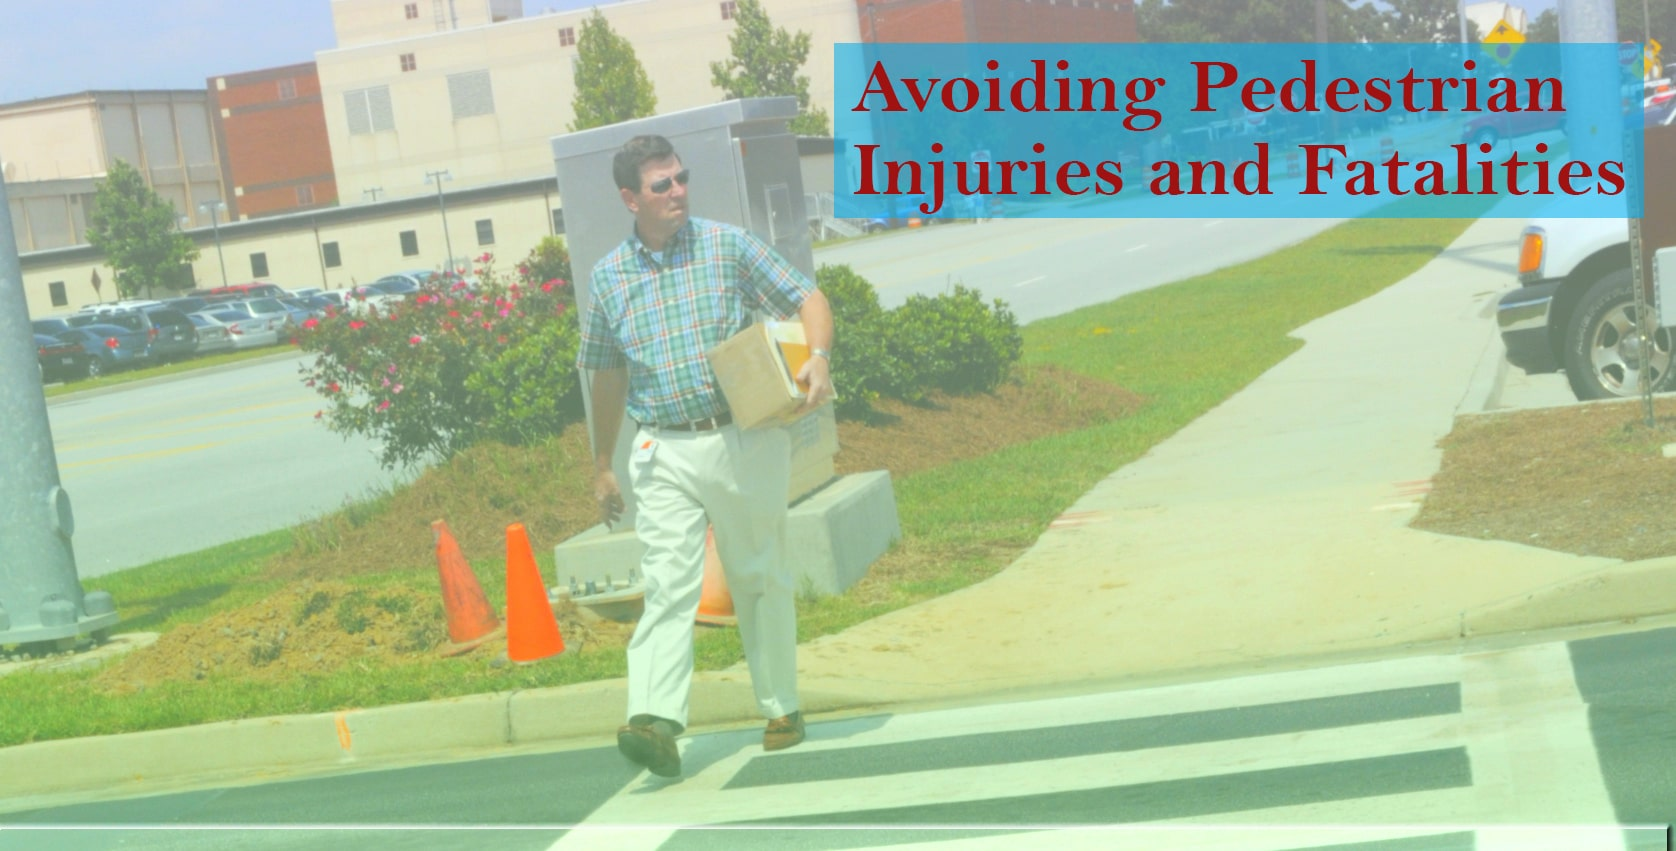 Pedestrian injury attorney in Massachusetts and New Hampshire